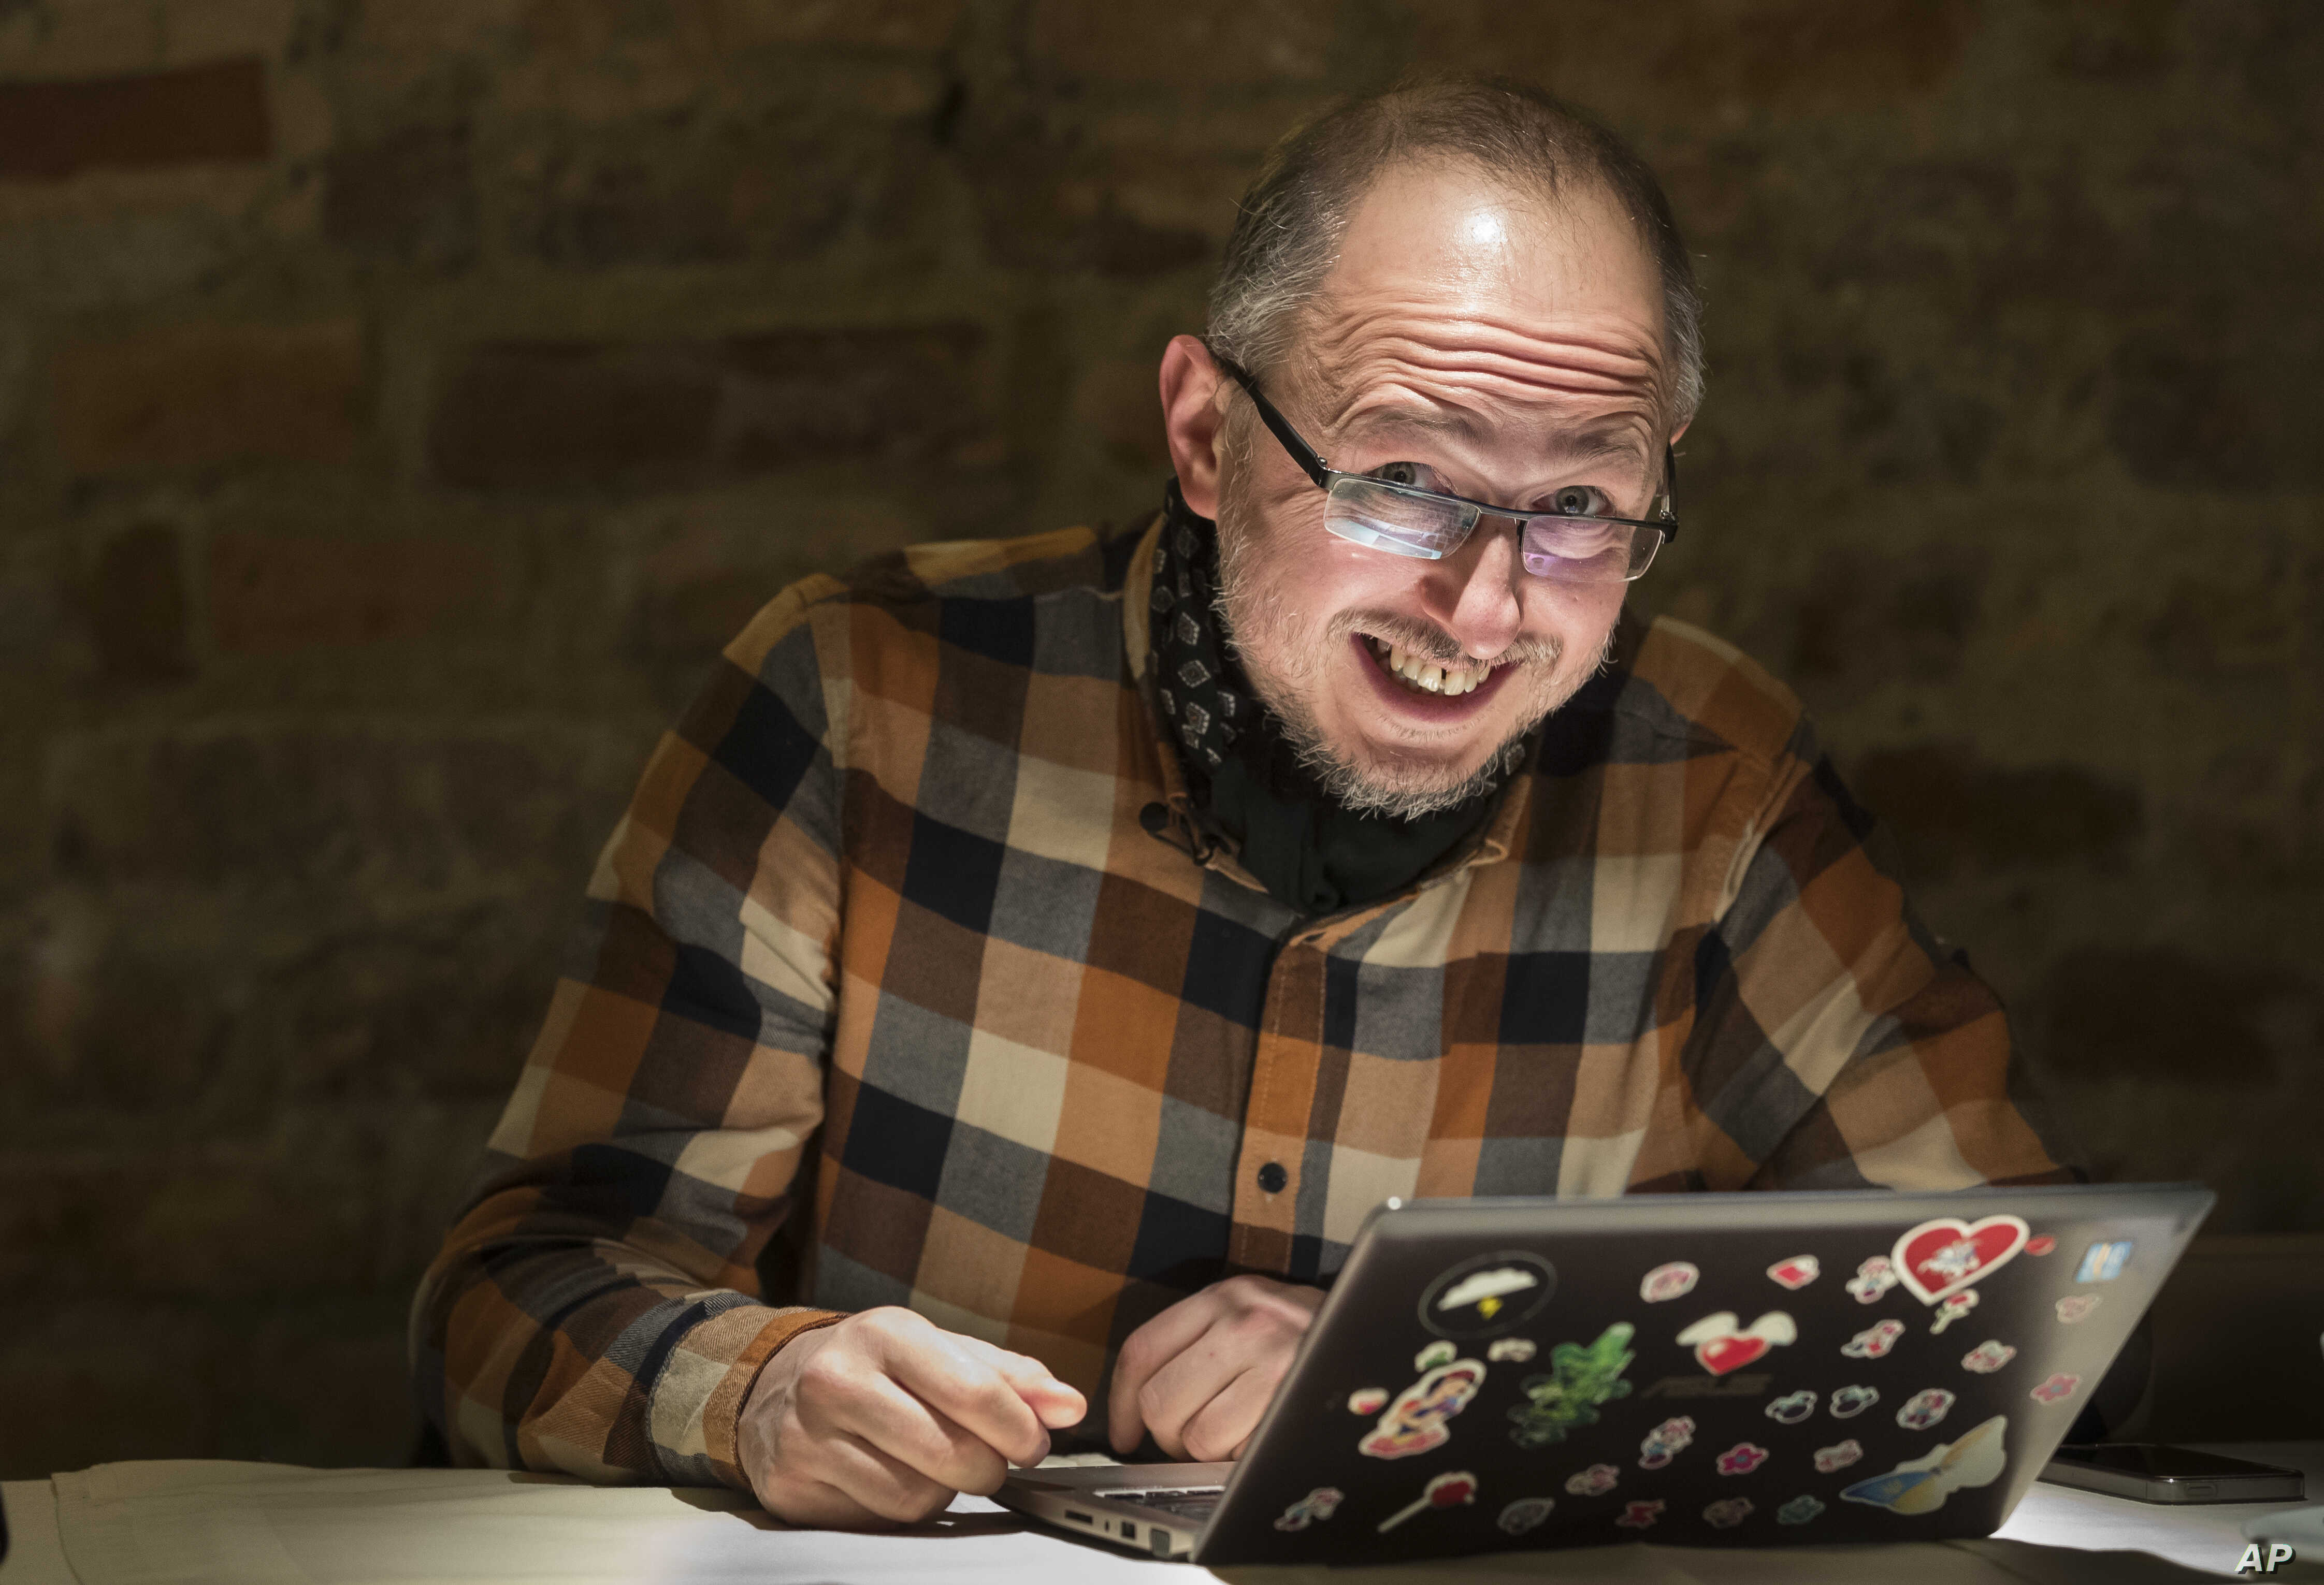 """In this Nov. 30, 2016 photo, Ricardas Savukynas, works on his computer in Vilnius, Lithuania. Savukynas is one of the Lithuanian volunteers who've dubbed themselves """"elves"""" patrol social media to expose fake accounts they accuse of spreading pro-Russ"""